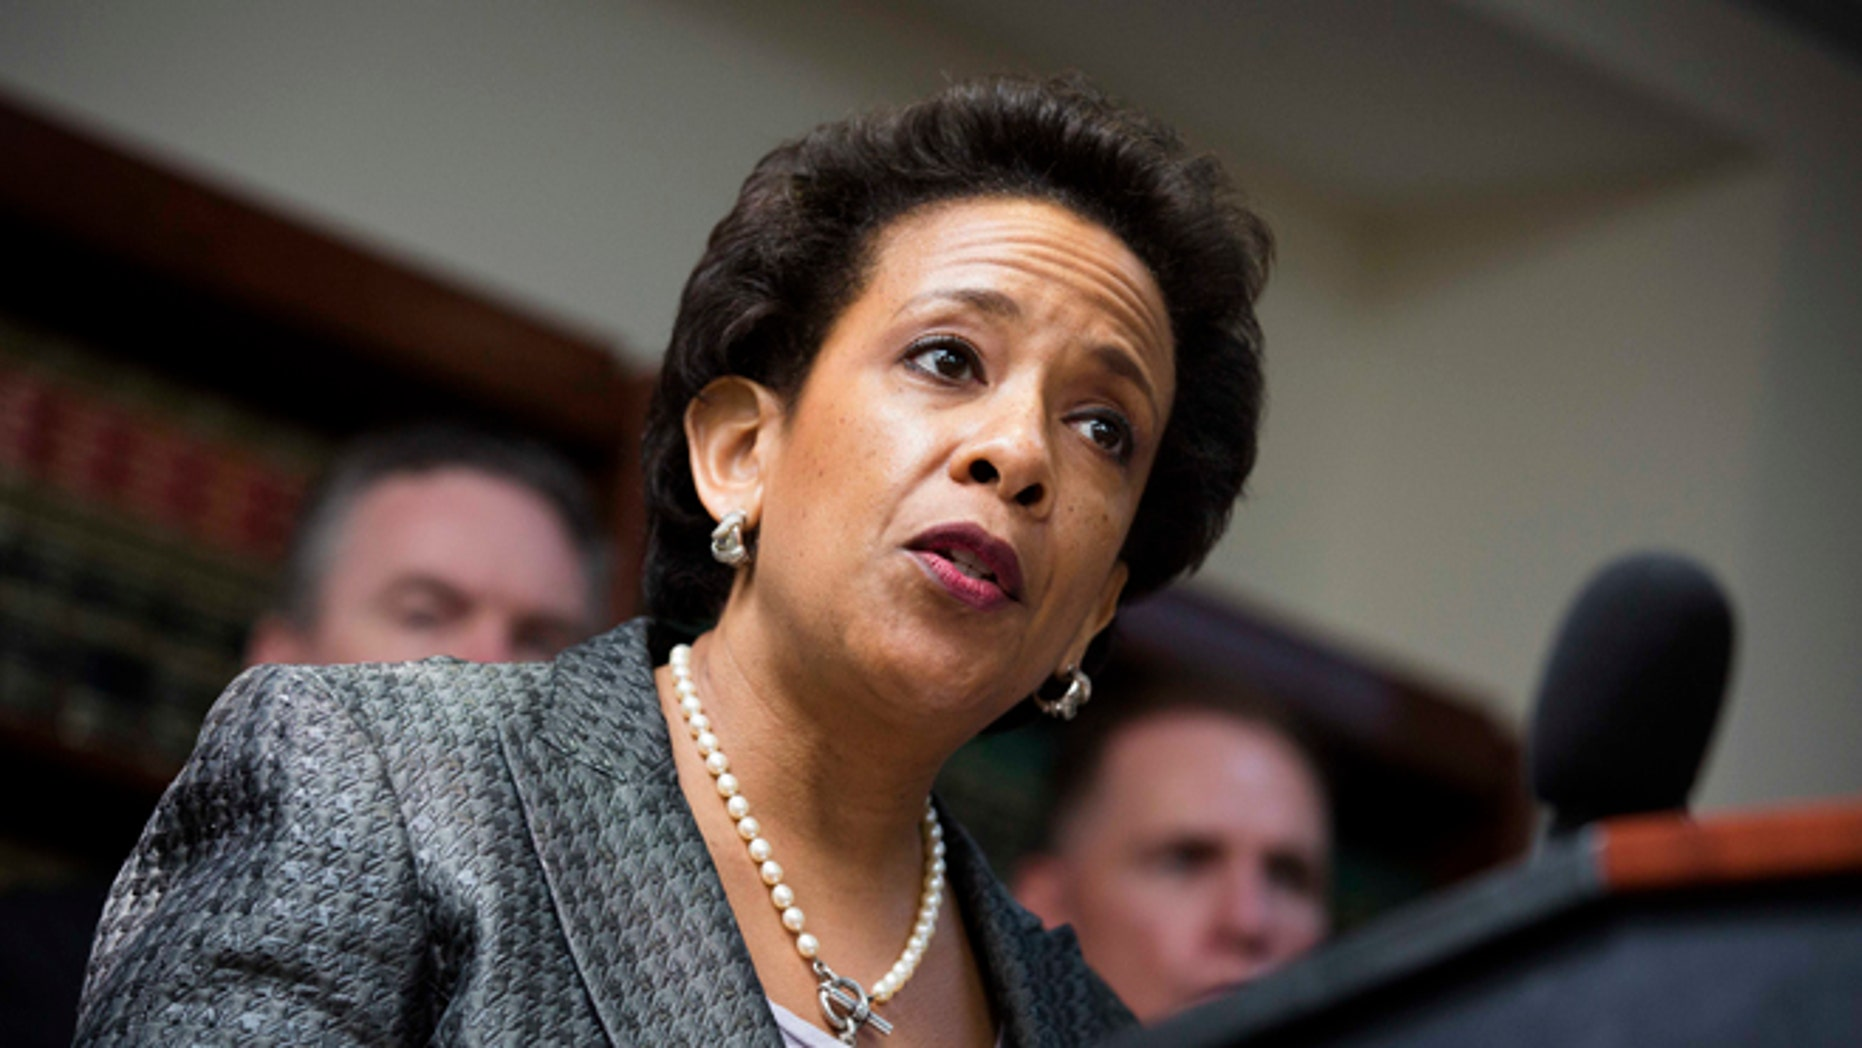 In this June 17, 2013 file photo, Loretta Lynch, U.S. attorney for the Eastern District of New York, speaks during a news conference in Brooklyn.